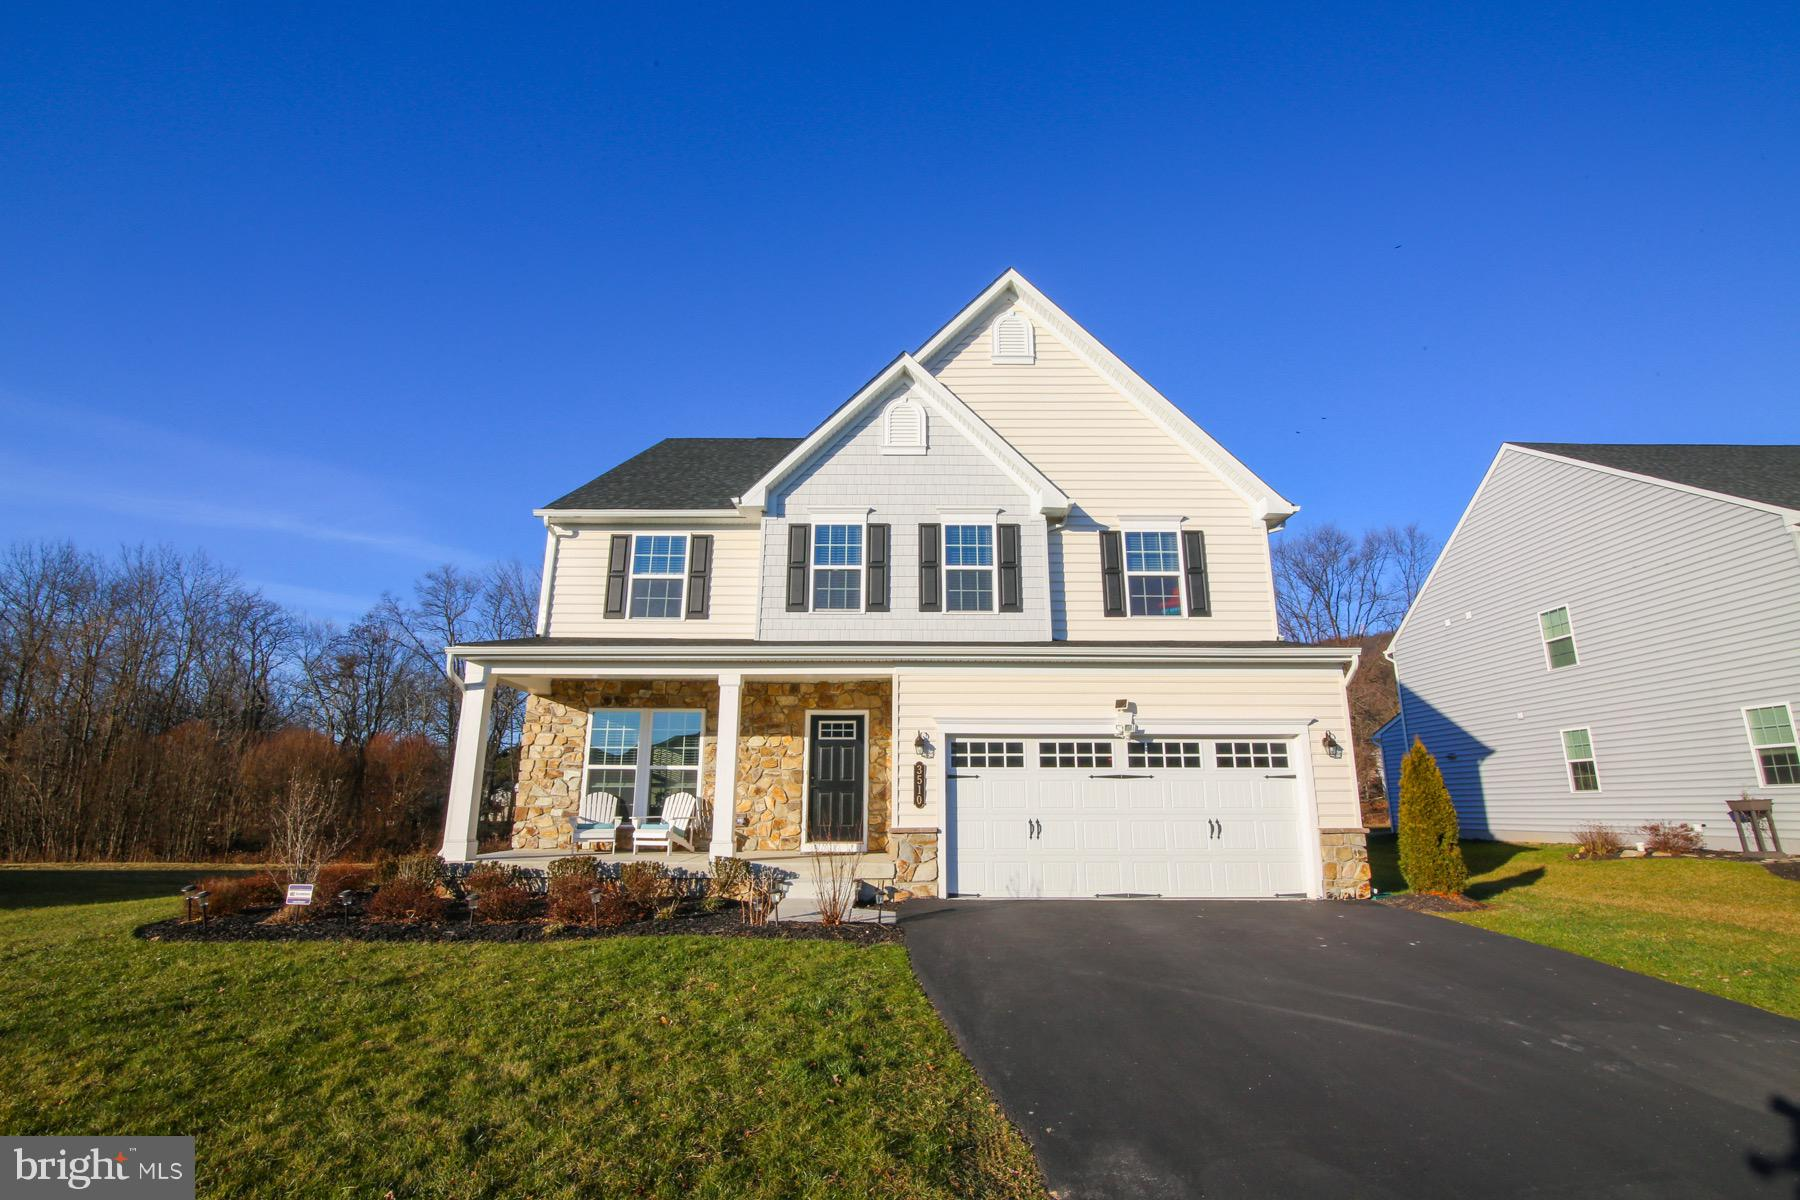 3510 CLARINBRIDGE WAY W, CENTER VALLEY, PA 18034